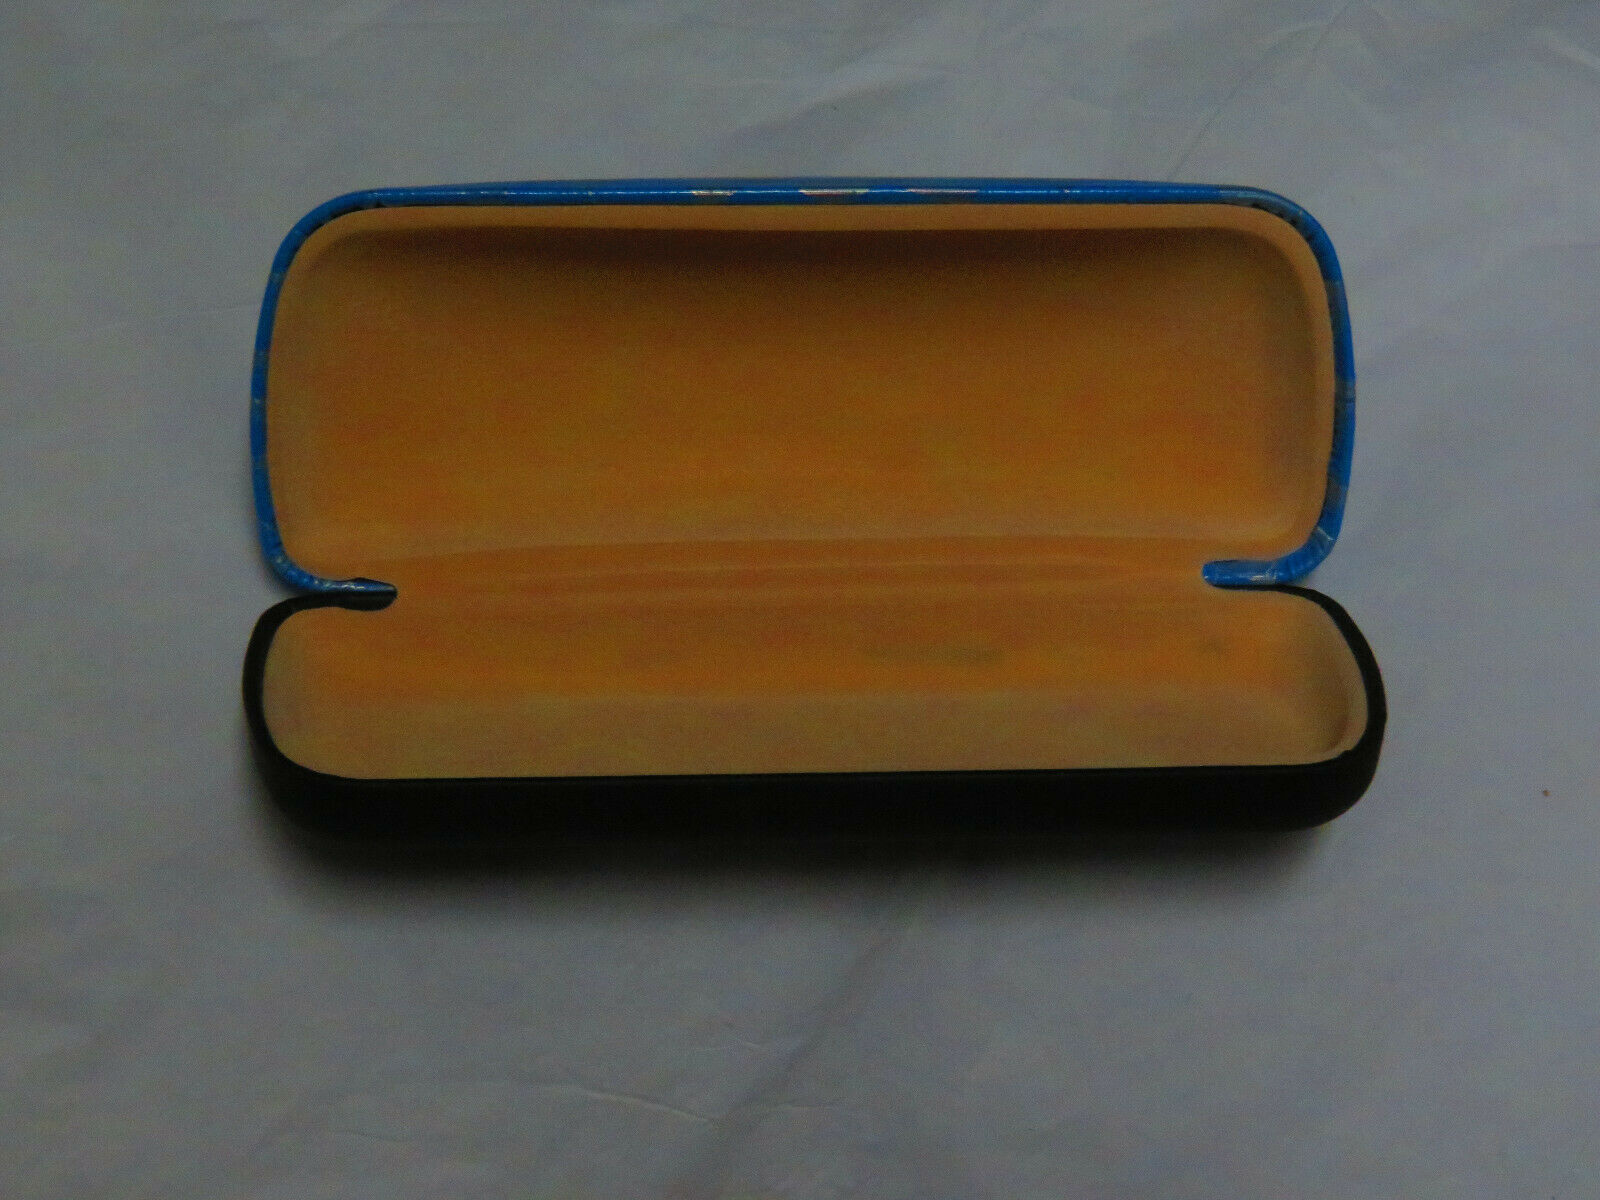 Greatfull Dead - Psychdelic - Clam Shell - Eyeglass Case Sale-107 - BIK - $8.95